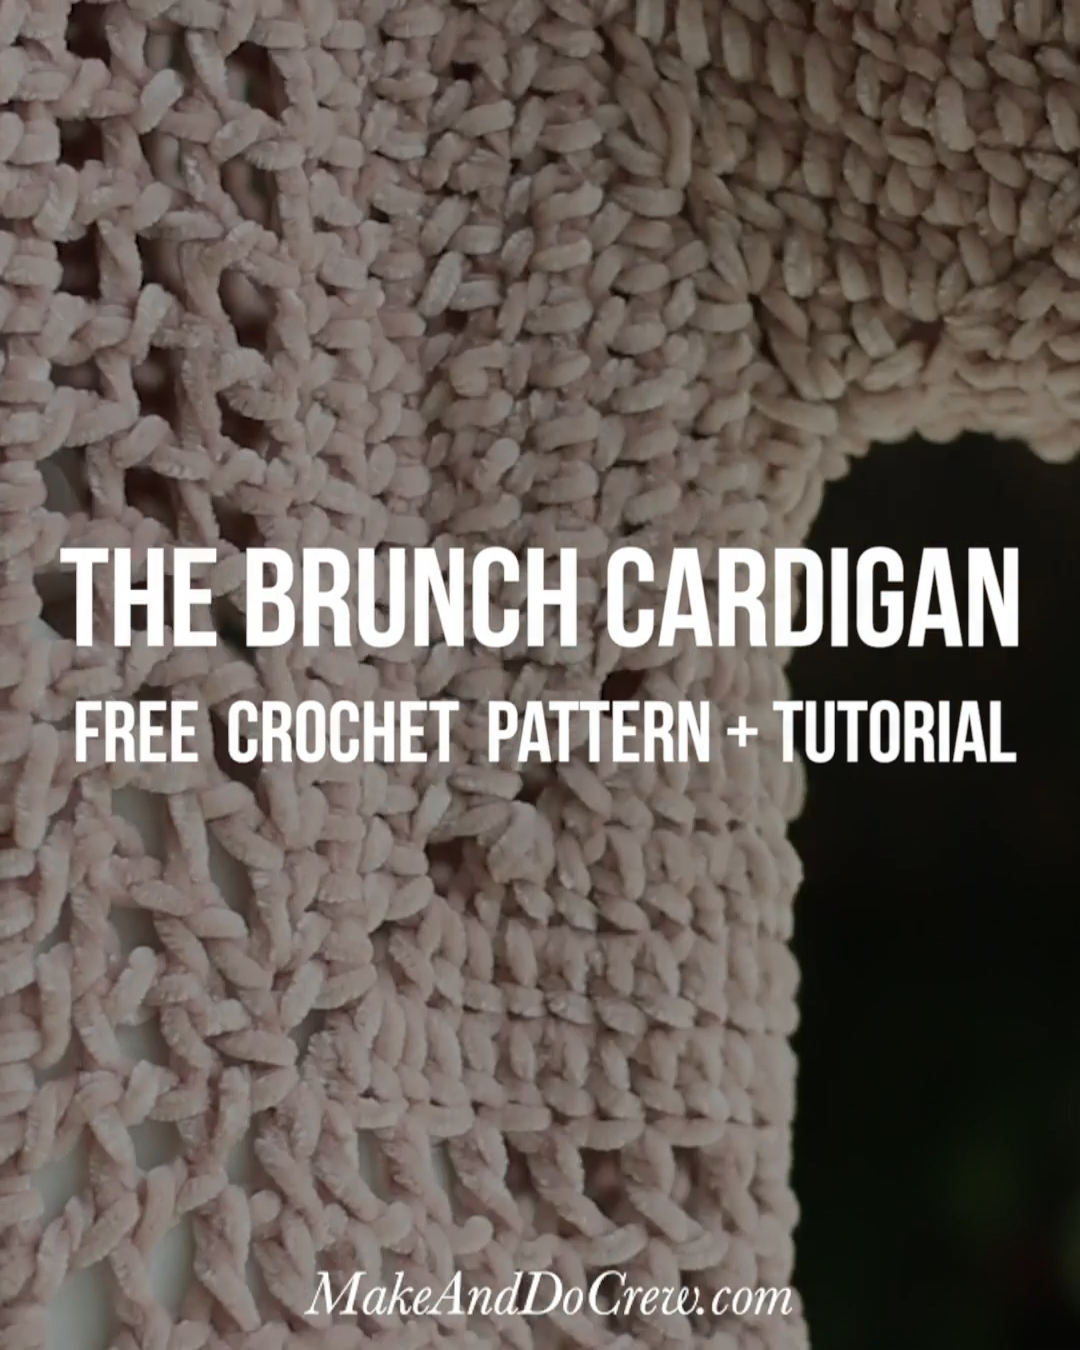 Free crochet cardigan pattern! This silky soft sweater is so much simpler than it looks. Made from two basic hexagons, you'll love watching your cardigan take shape before your very eyes! And because of how it's constructed, you can try it on and adjust as you crochet, making this the perfect pattern for garment-making newbies. #makeanddocrew #freecrochetpattern #crochetsweaterpattern #crochetcardiganpattern